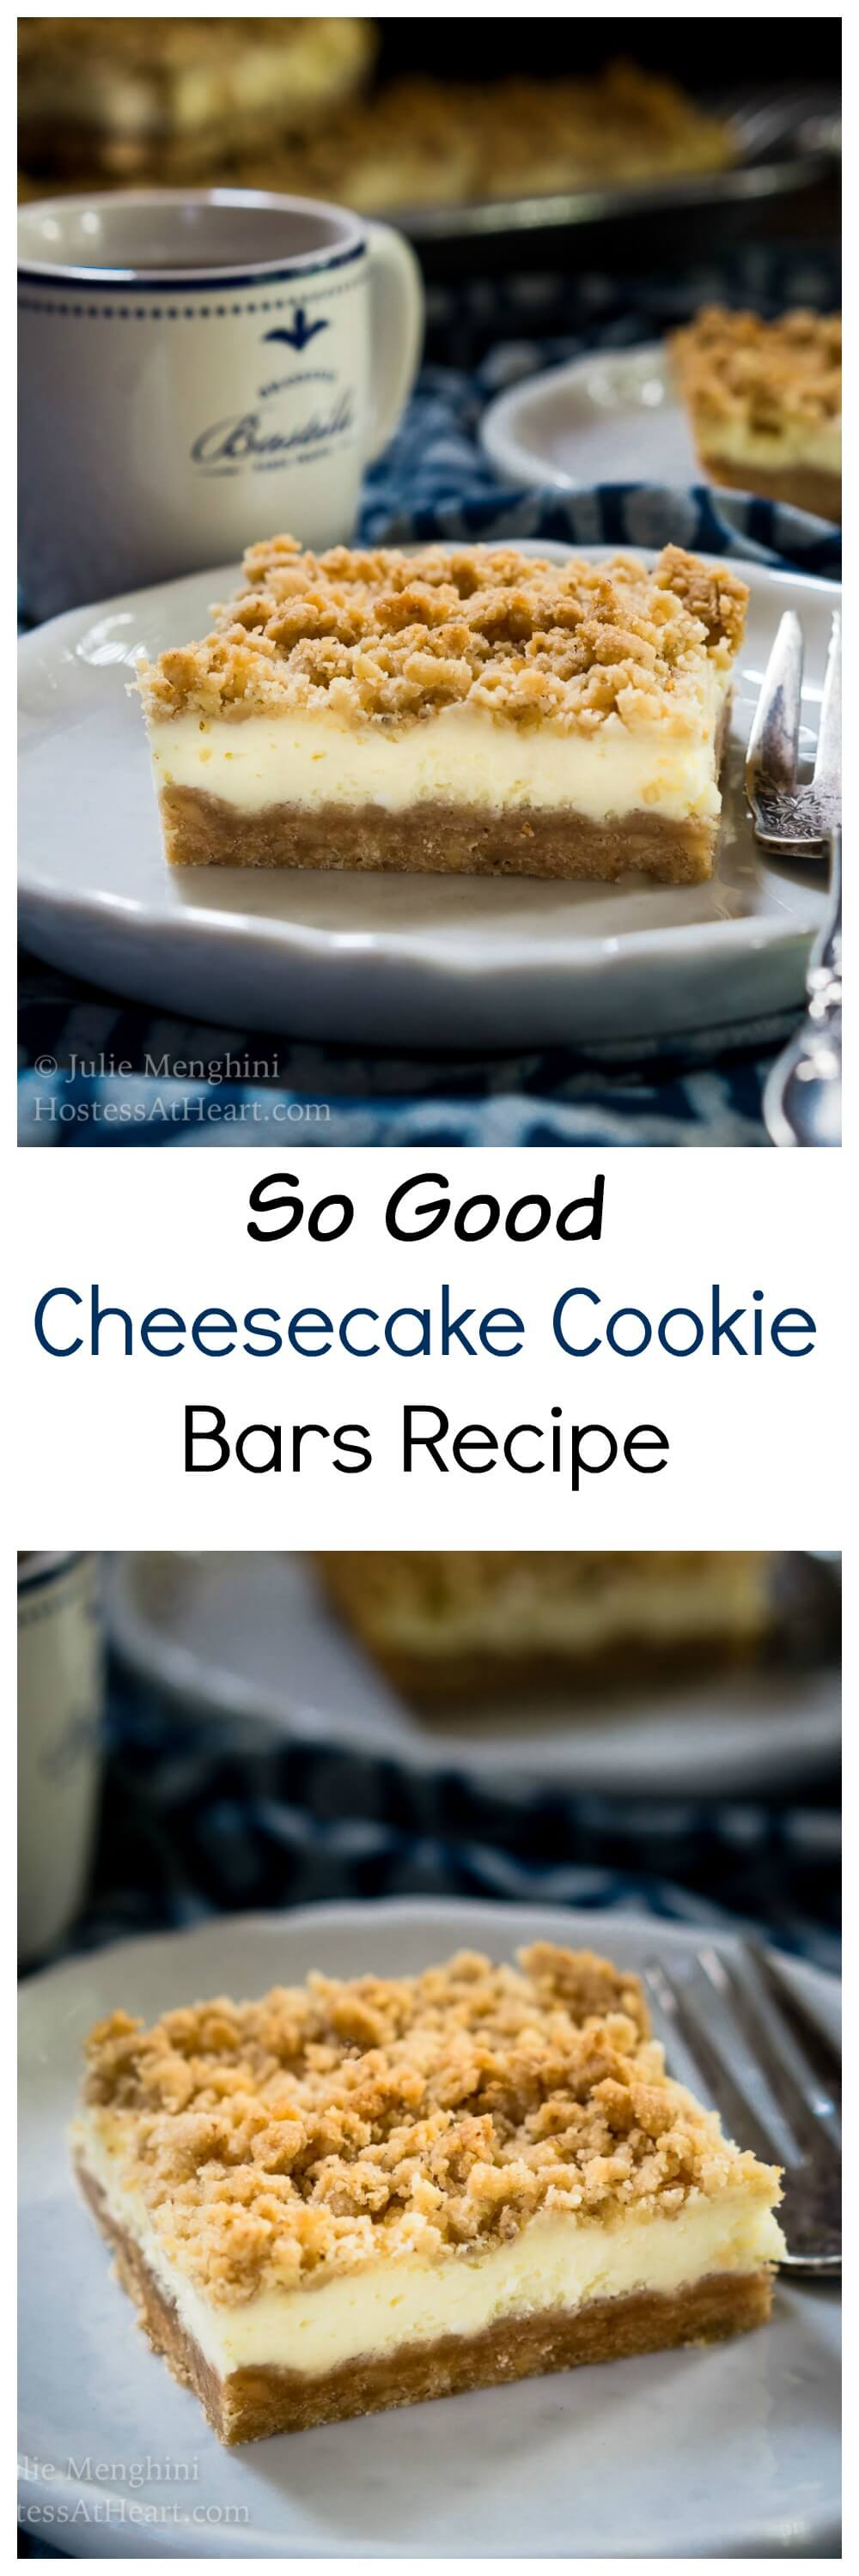 These Cheesecake Cookie Bars are So Good.  They're quick and easy to make and taste like a fancy cheesecake without all of the fuss.  #Cheesecakedessert #Cheesecake #homemade #sweet | Dessert | Baking | Cookie Bars